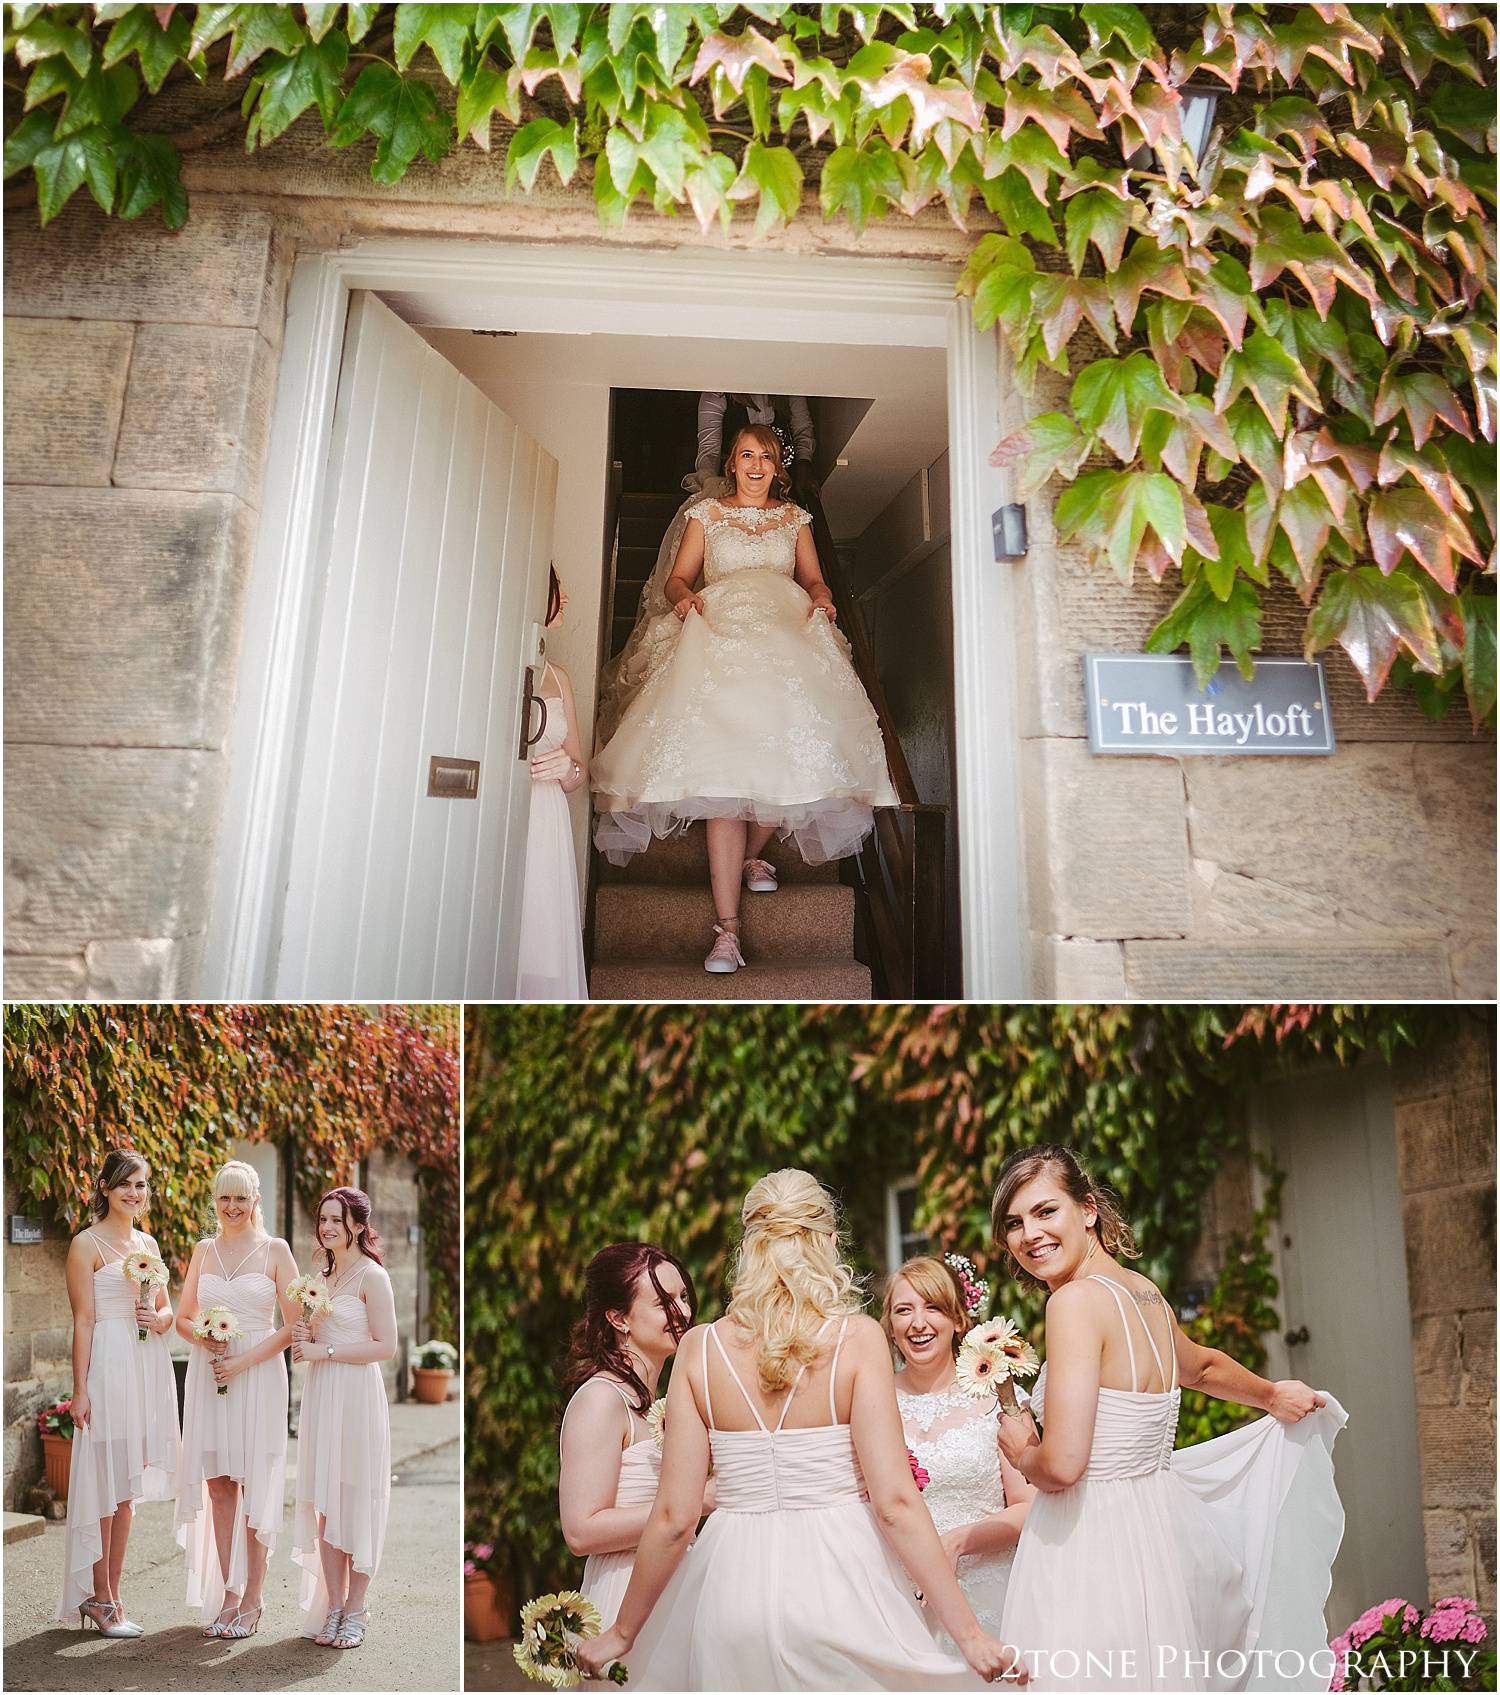 Doxford barns wedding photographer 021.jpg